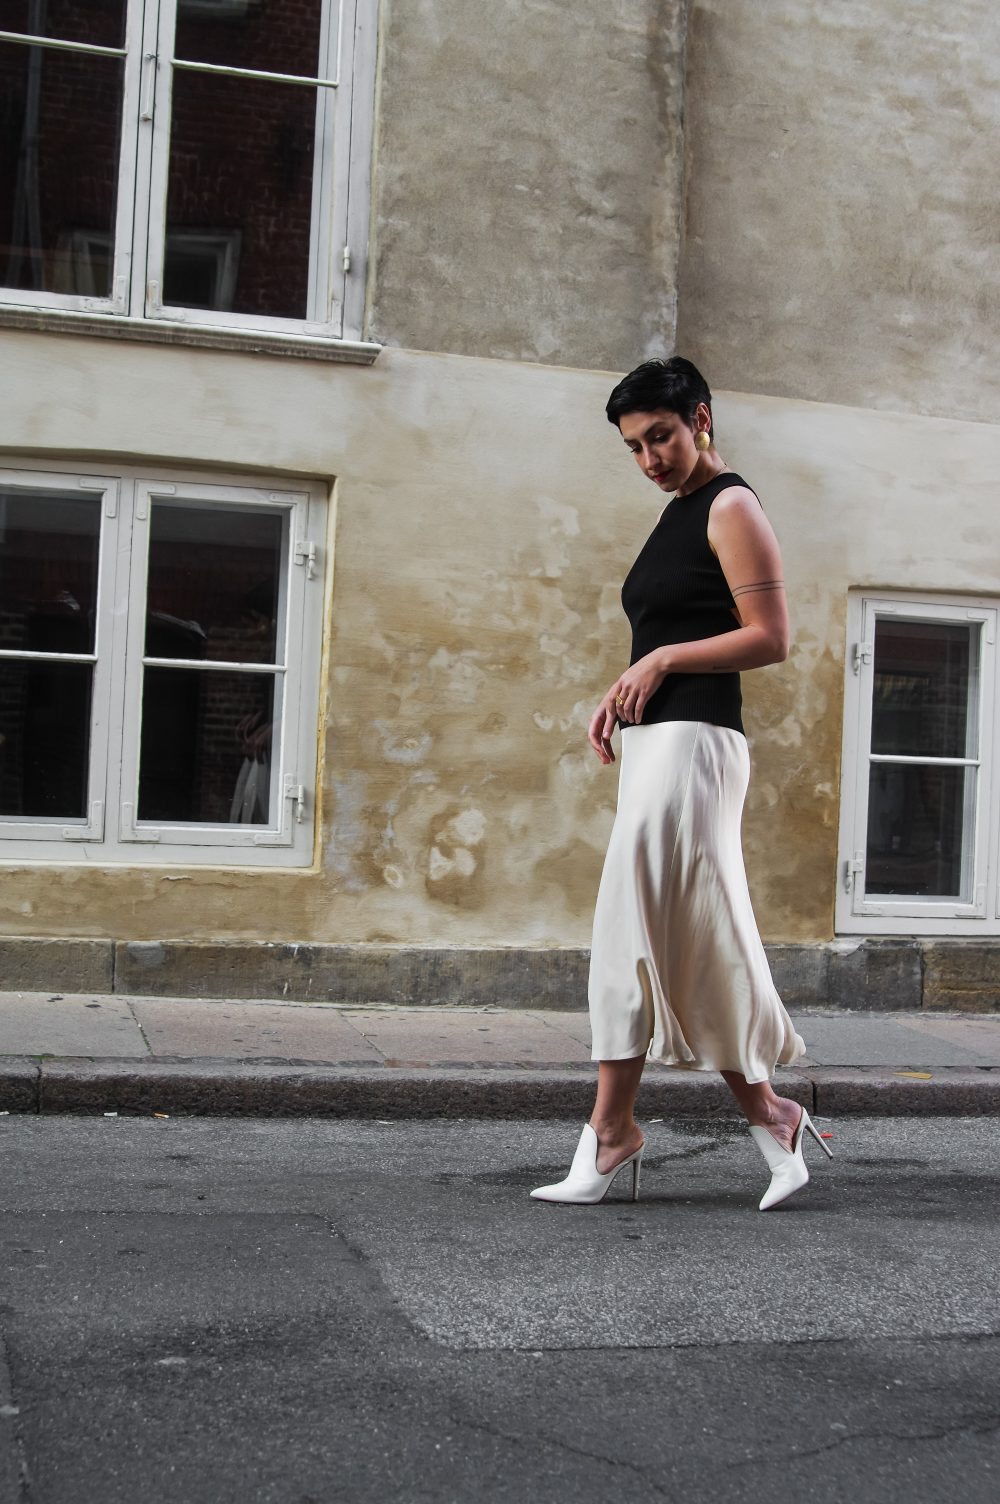 Spring-summer-outfit-ideas-for-work-and-everything-in-between-silky-pleated-skirt-scandinavian-style-streetstyle-minimalistic-style-elegance